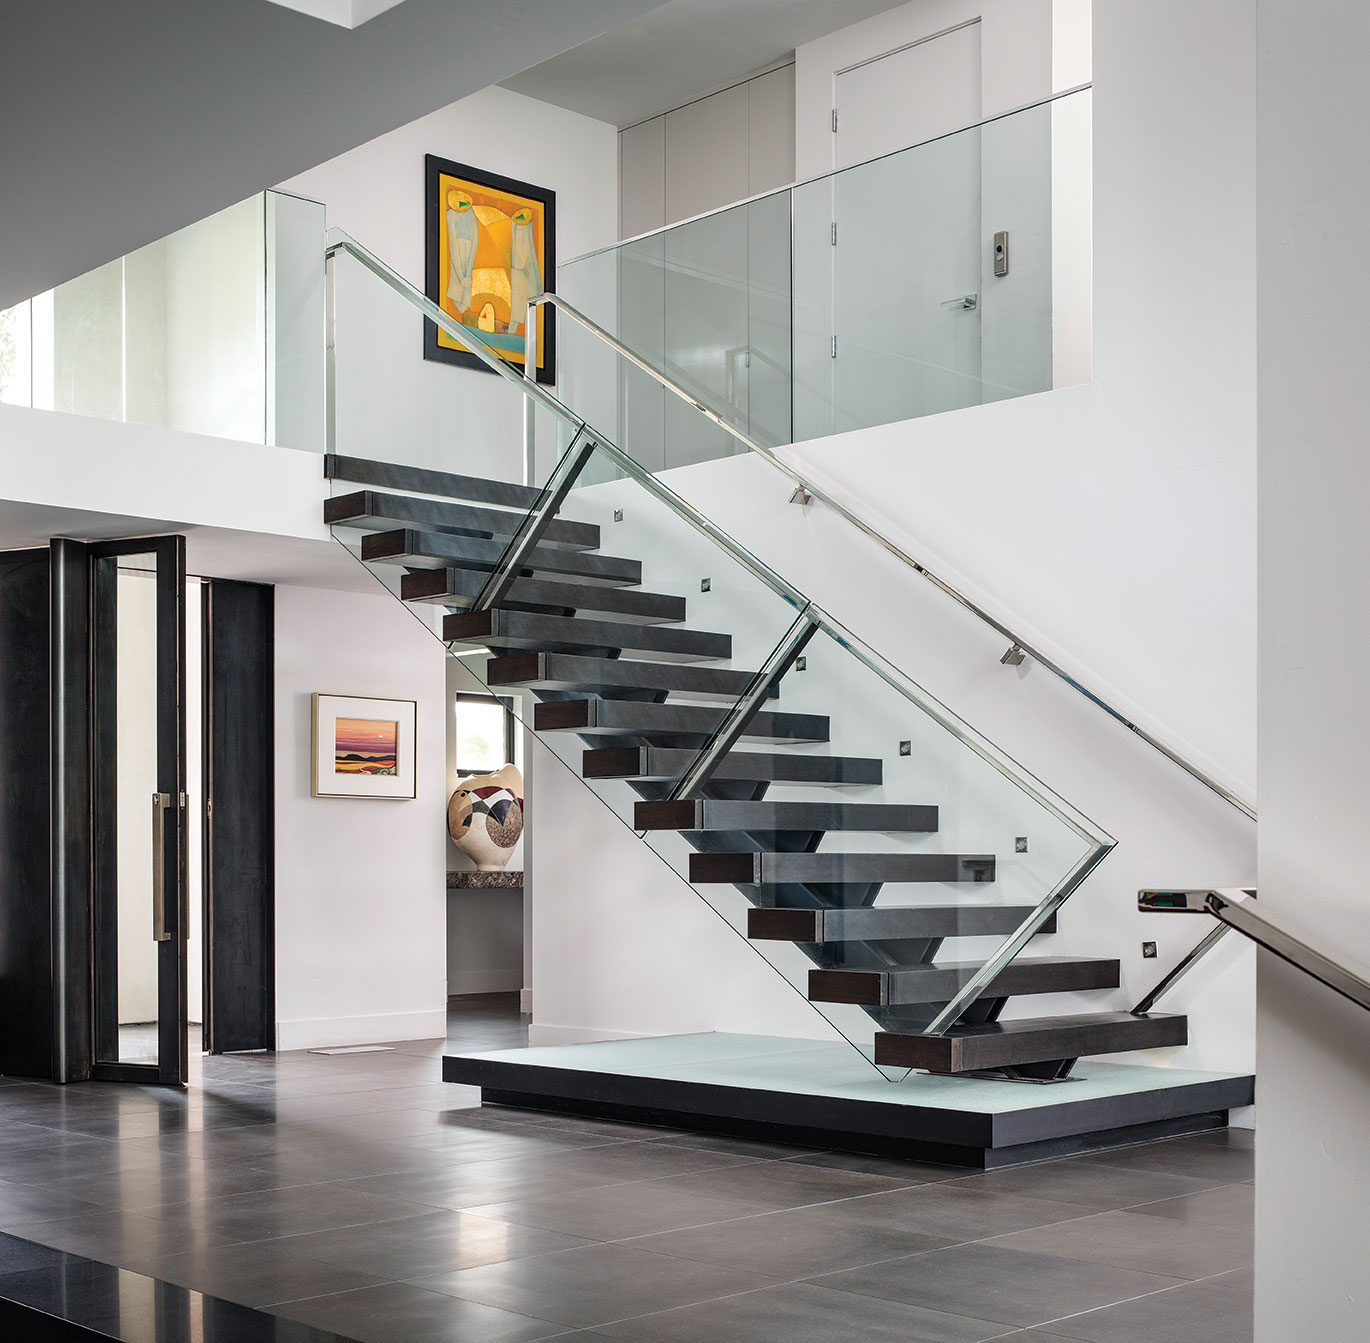 Bob White staircase